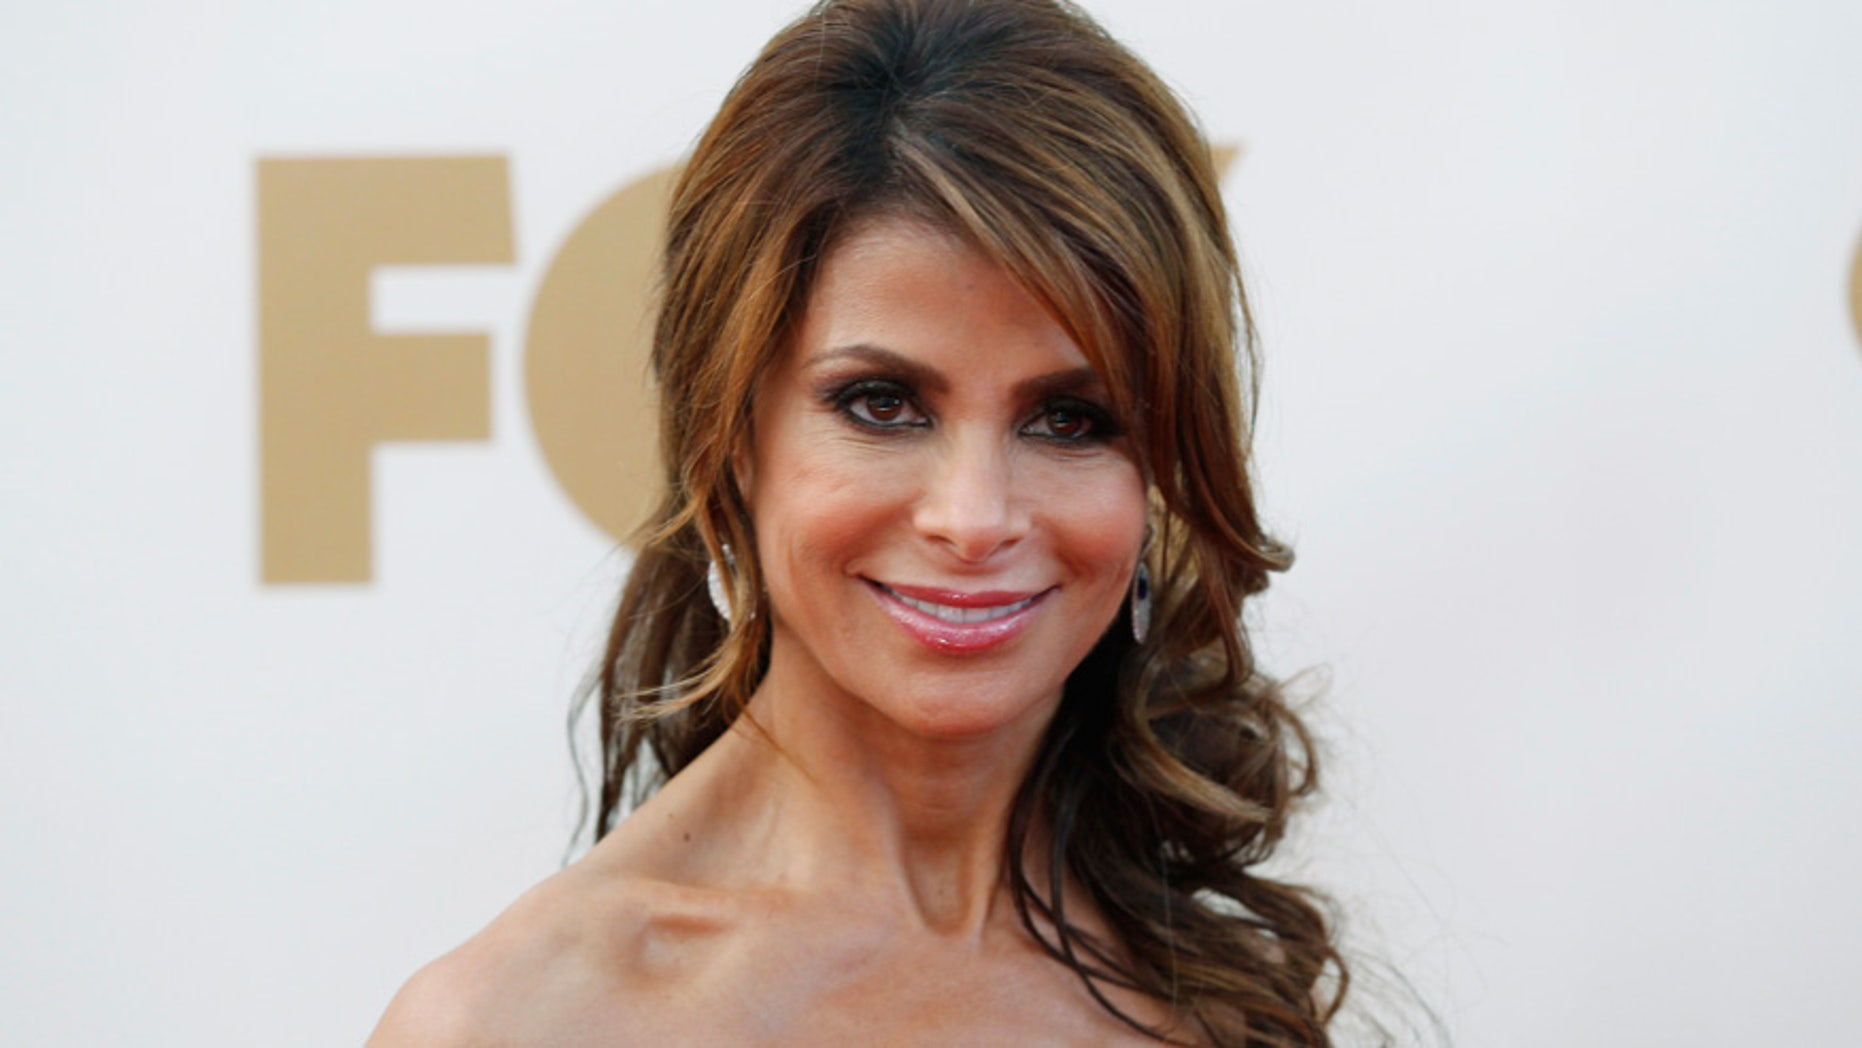 Paula Abdul fell off the stage at a recent concert performance